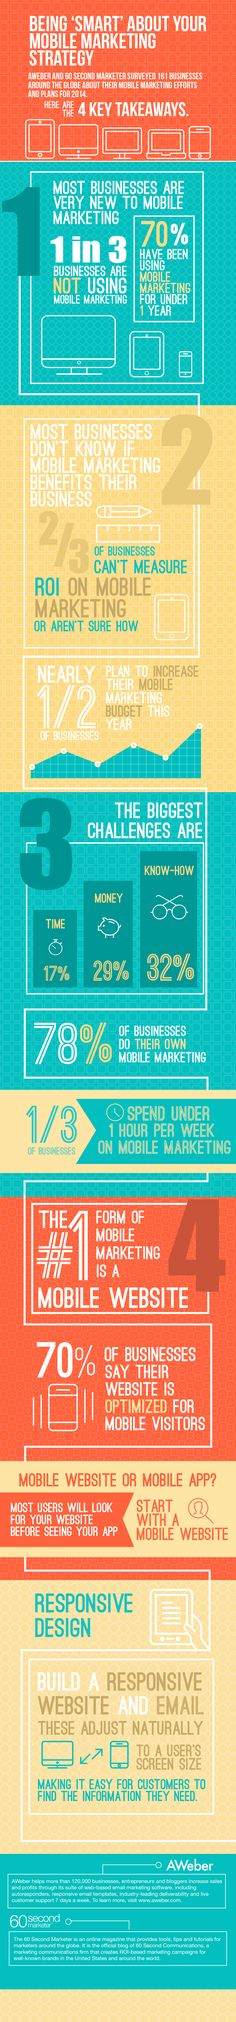 2014 Mobile Marketing Infographic: Being 'Smart' About your Mobile Marketing Strategy. #mobile #marketing #infographic